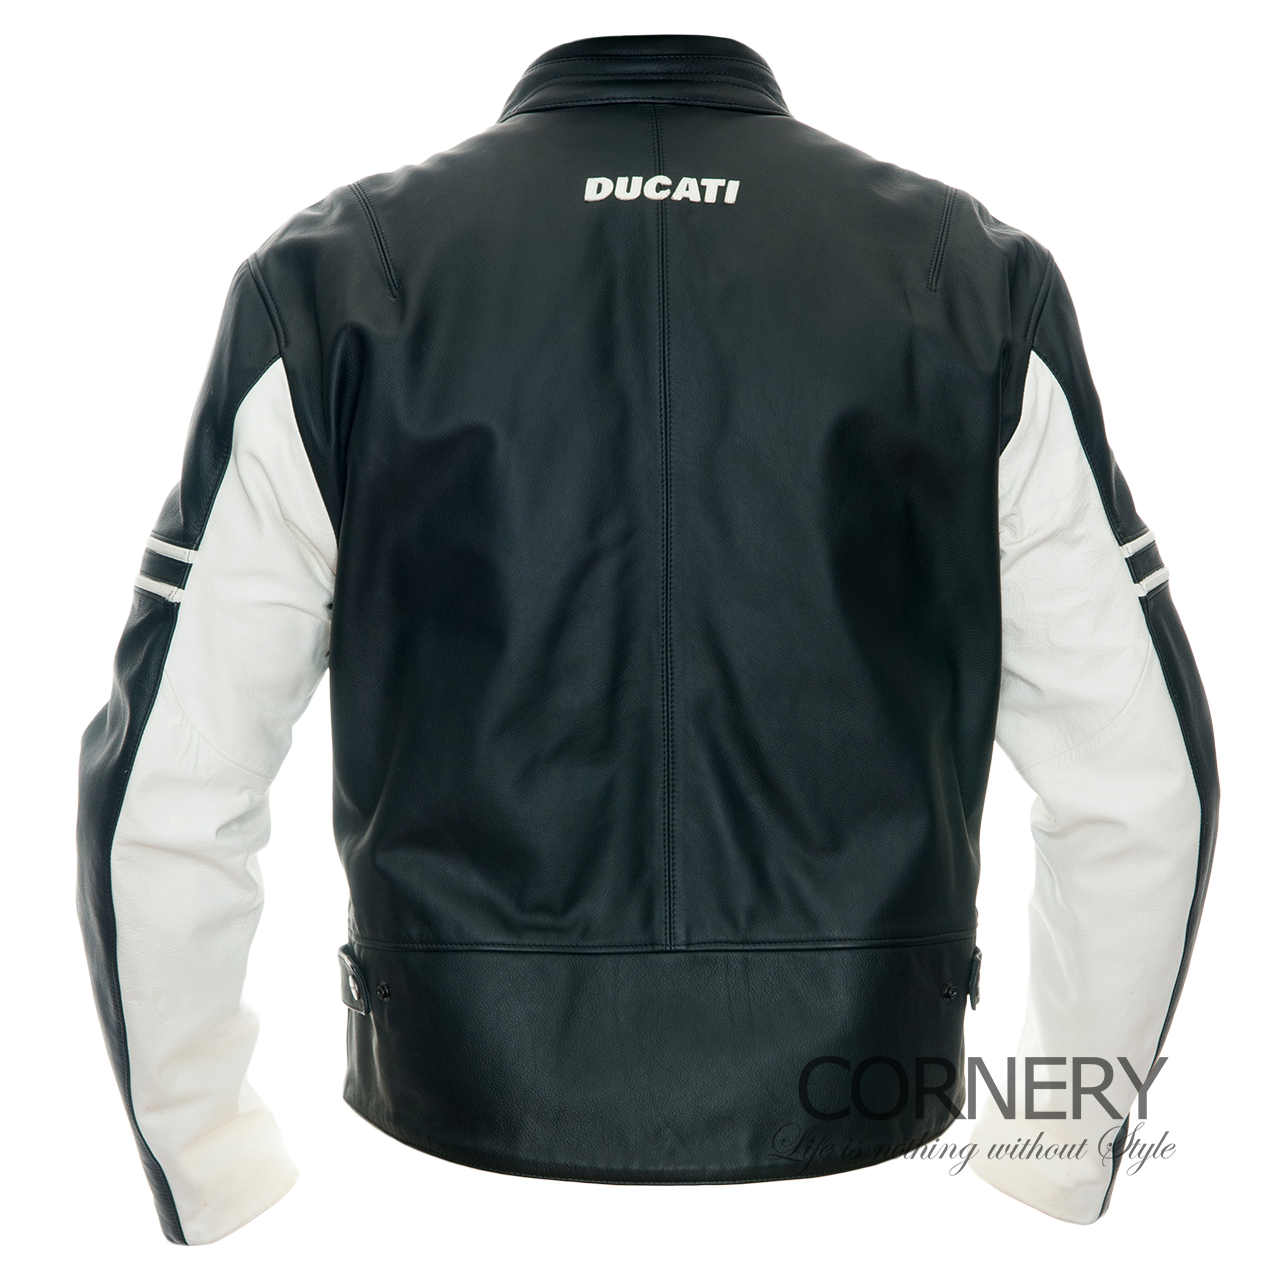 Dns for Ducati Leather Jacket